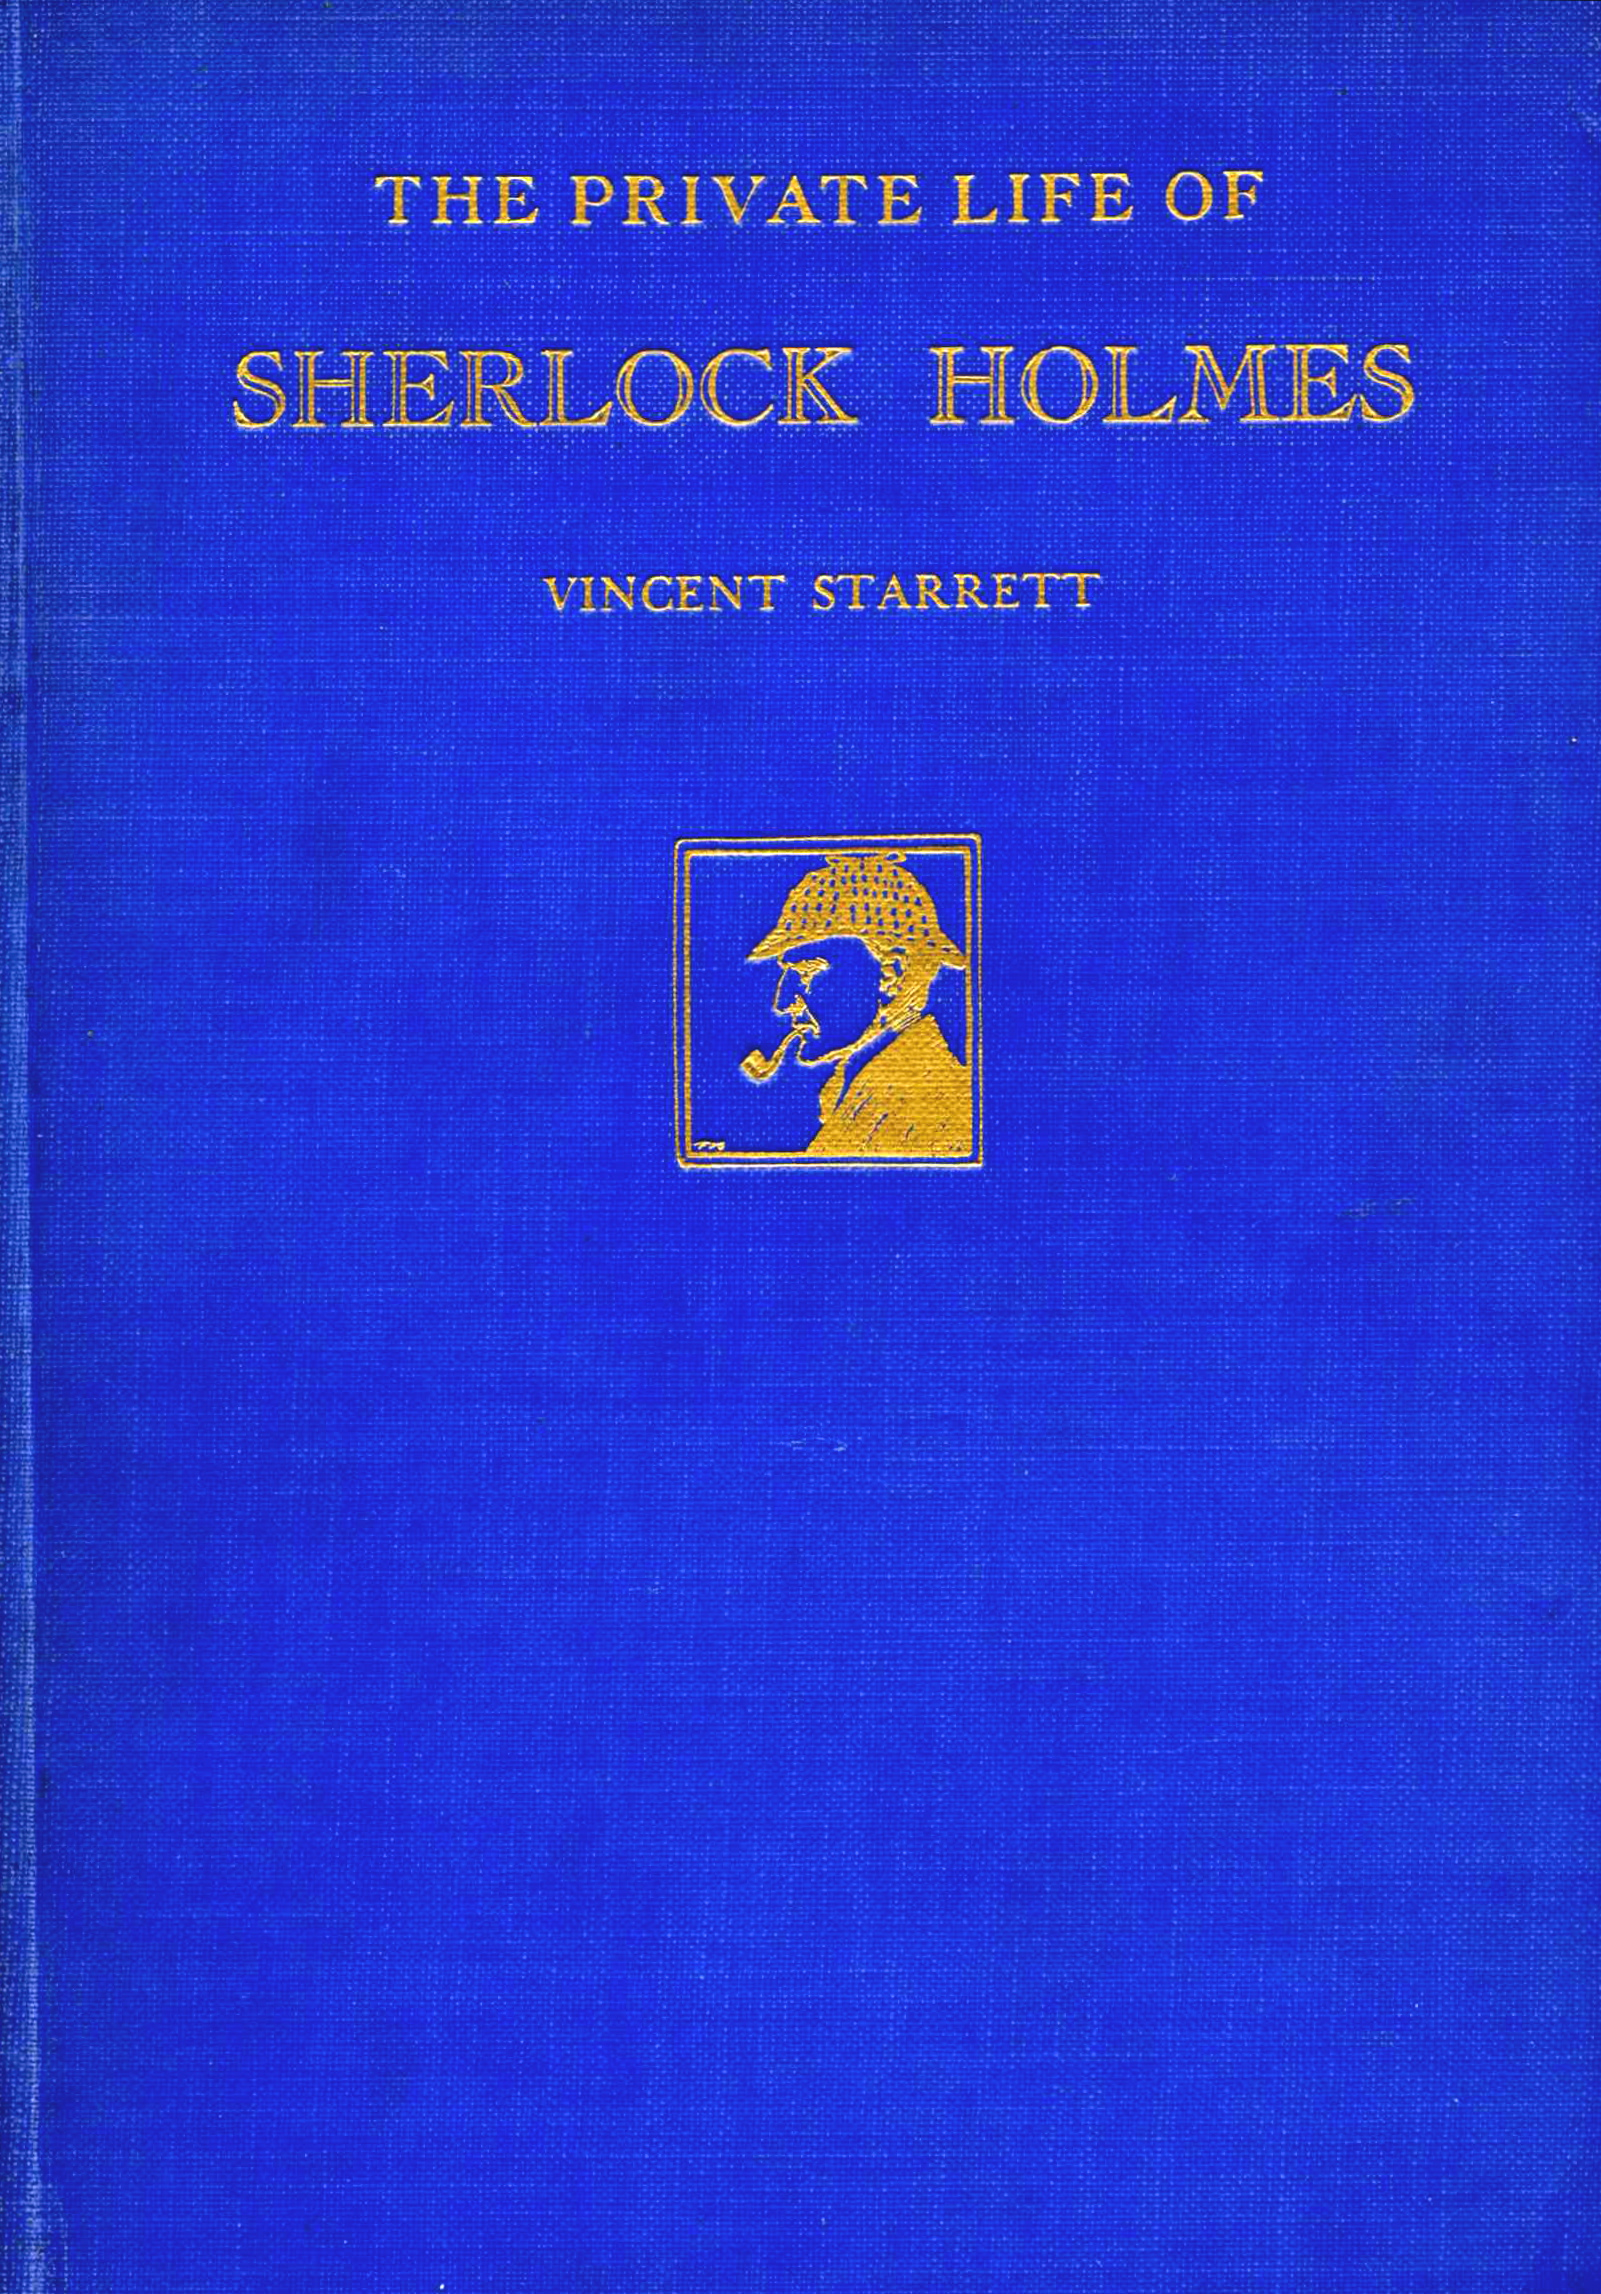 Cover to the first edition of  The Private Life of Sherlock Holmes,  1933.